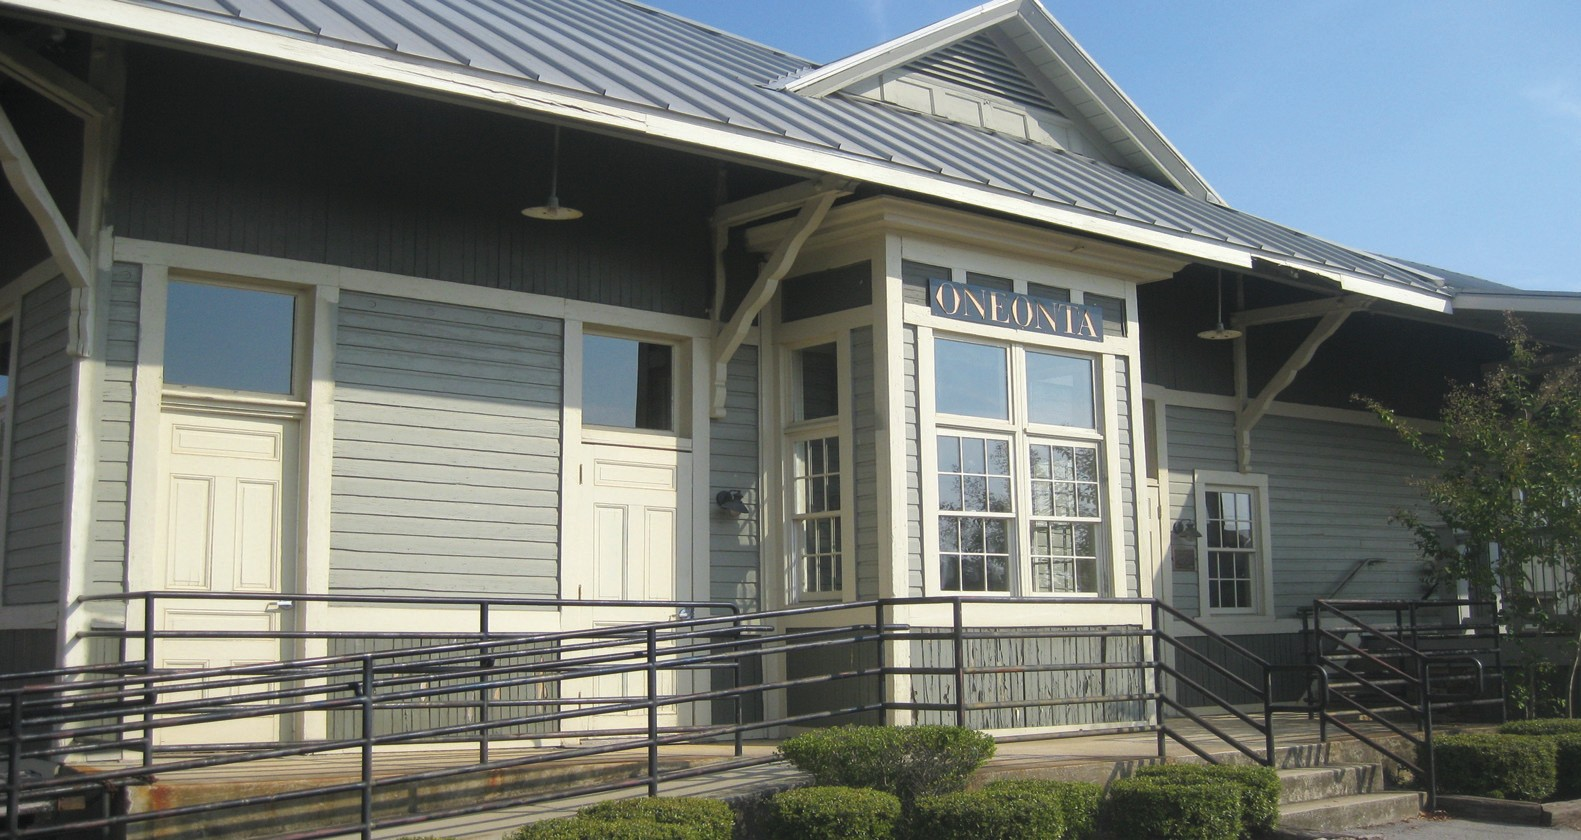 L&N DEPOT at Oneonta Rec Park, a piece of history captured, is maintained by the city and used by widely varying groups.